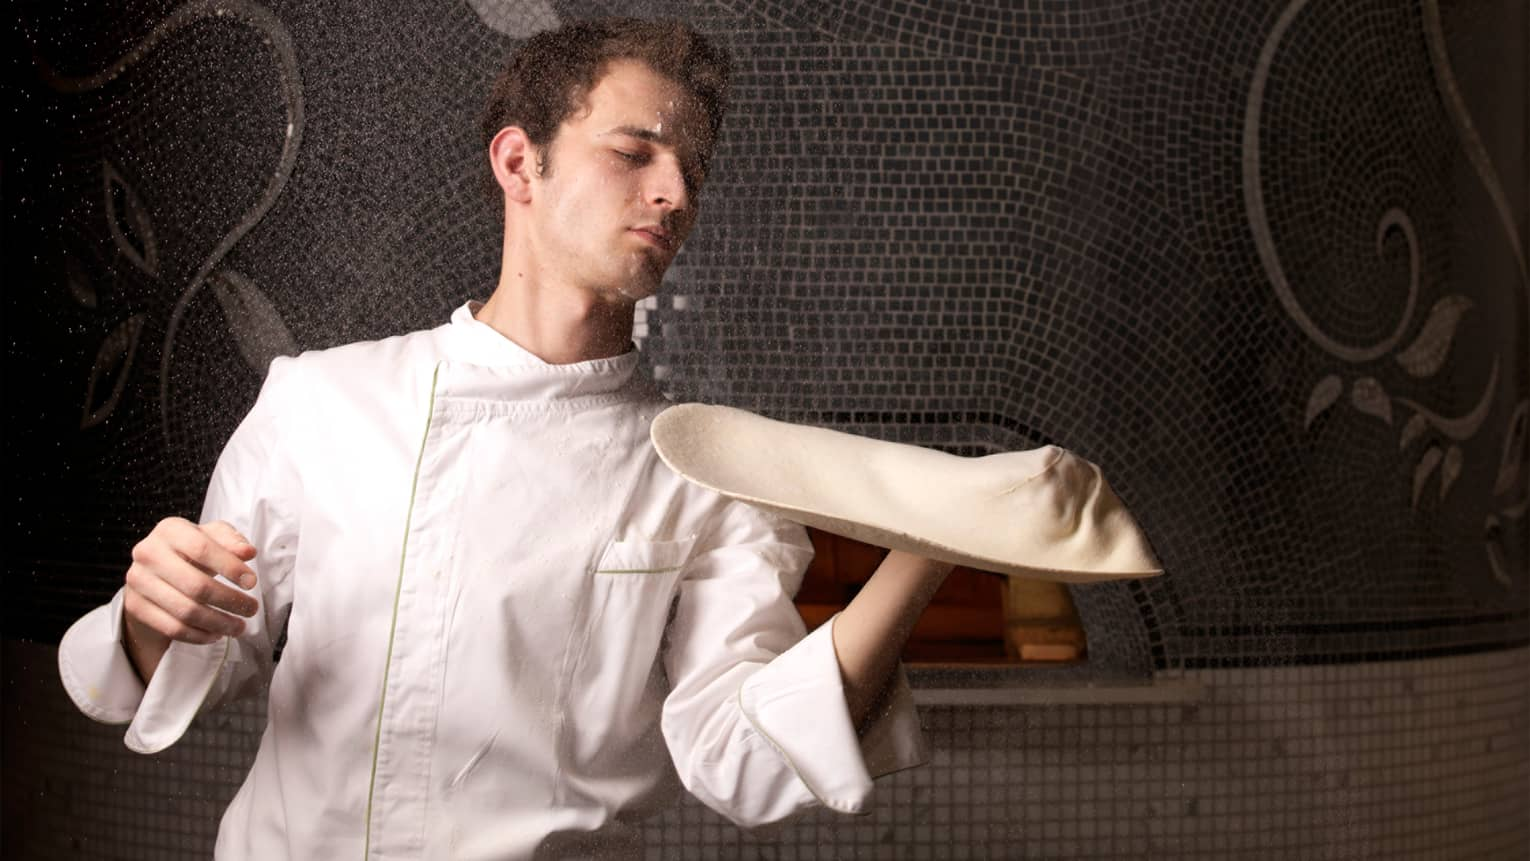 Chef in white uniform tosses pizza dough on hand in front of black mosaic tile wall